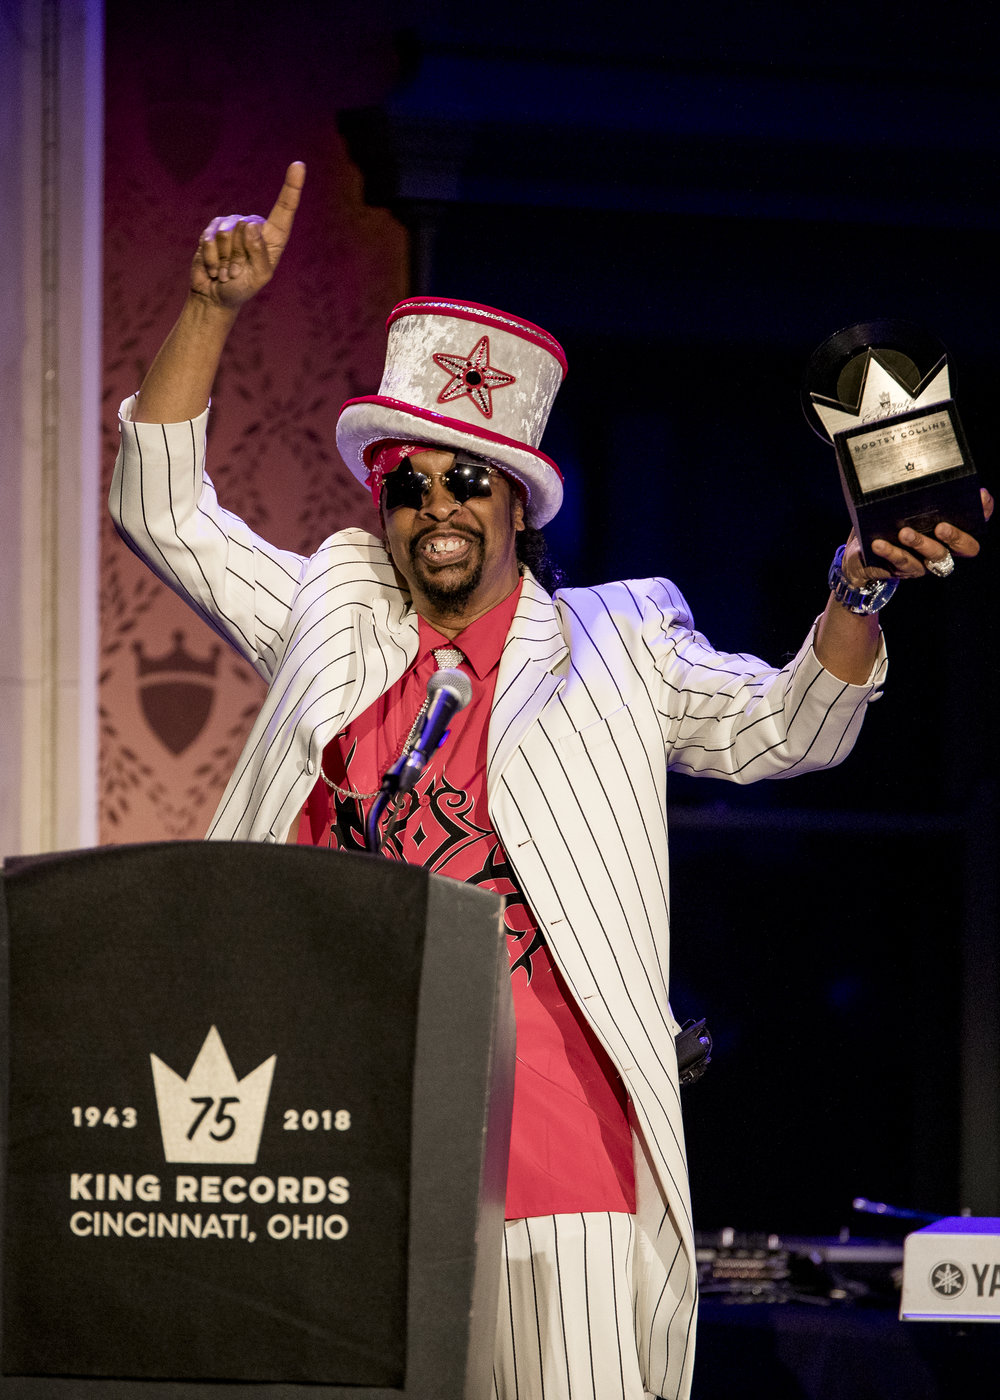 The crowd erupts with Bootsy Collins giving some love and saying thanks to Cincinnati and King Records.